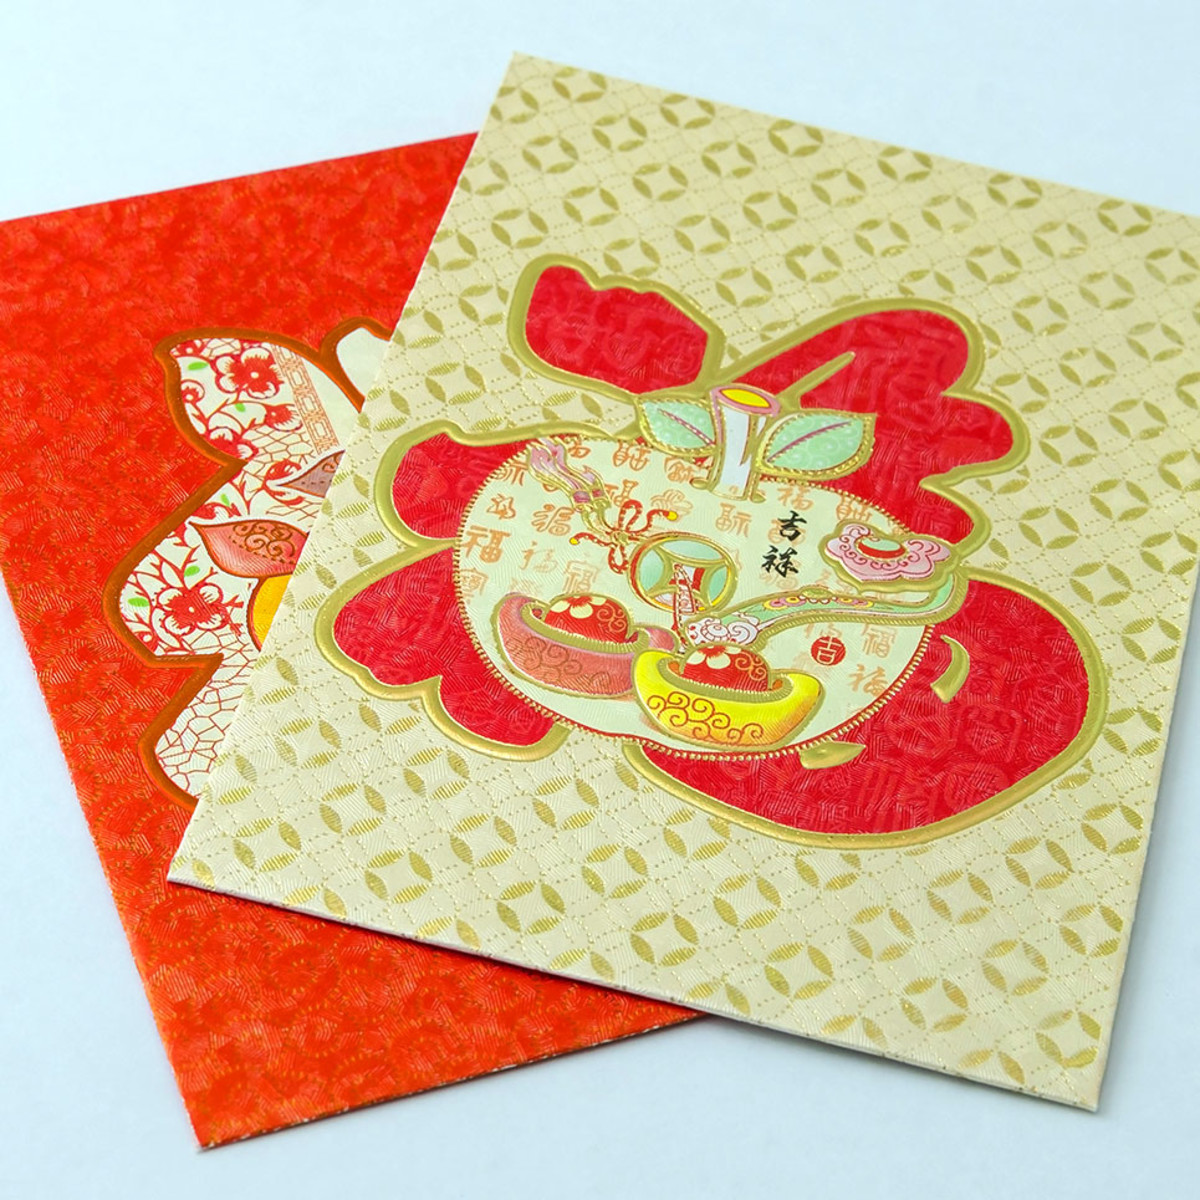 Chinese New Year red packets. Nowadays, they come in other shades of red, and gold too.